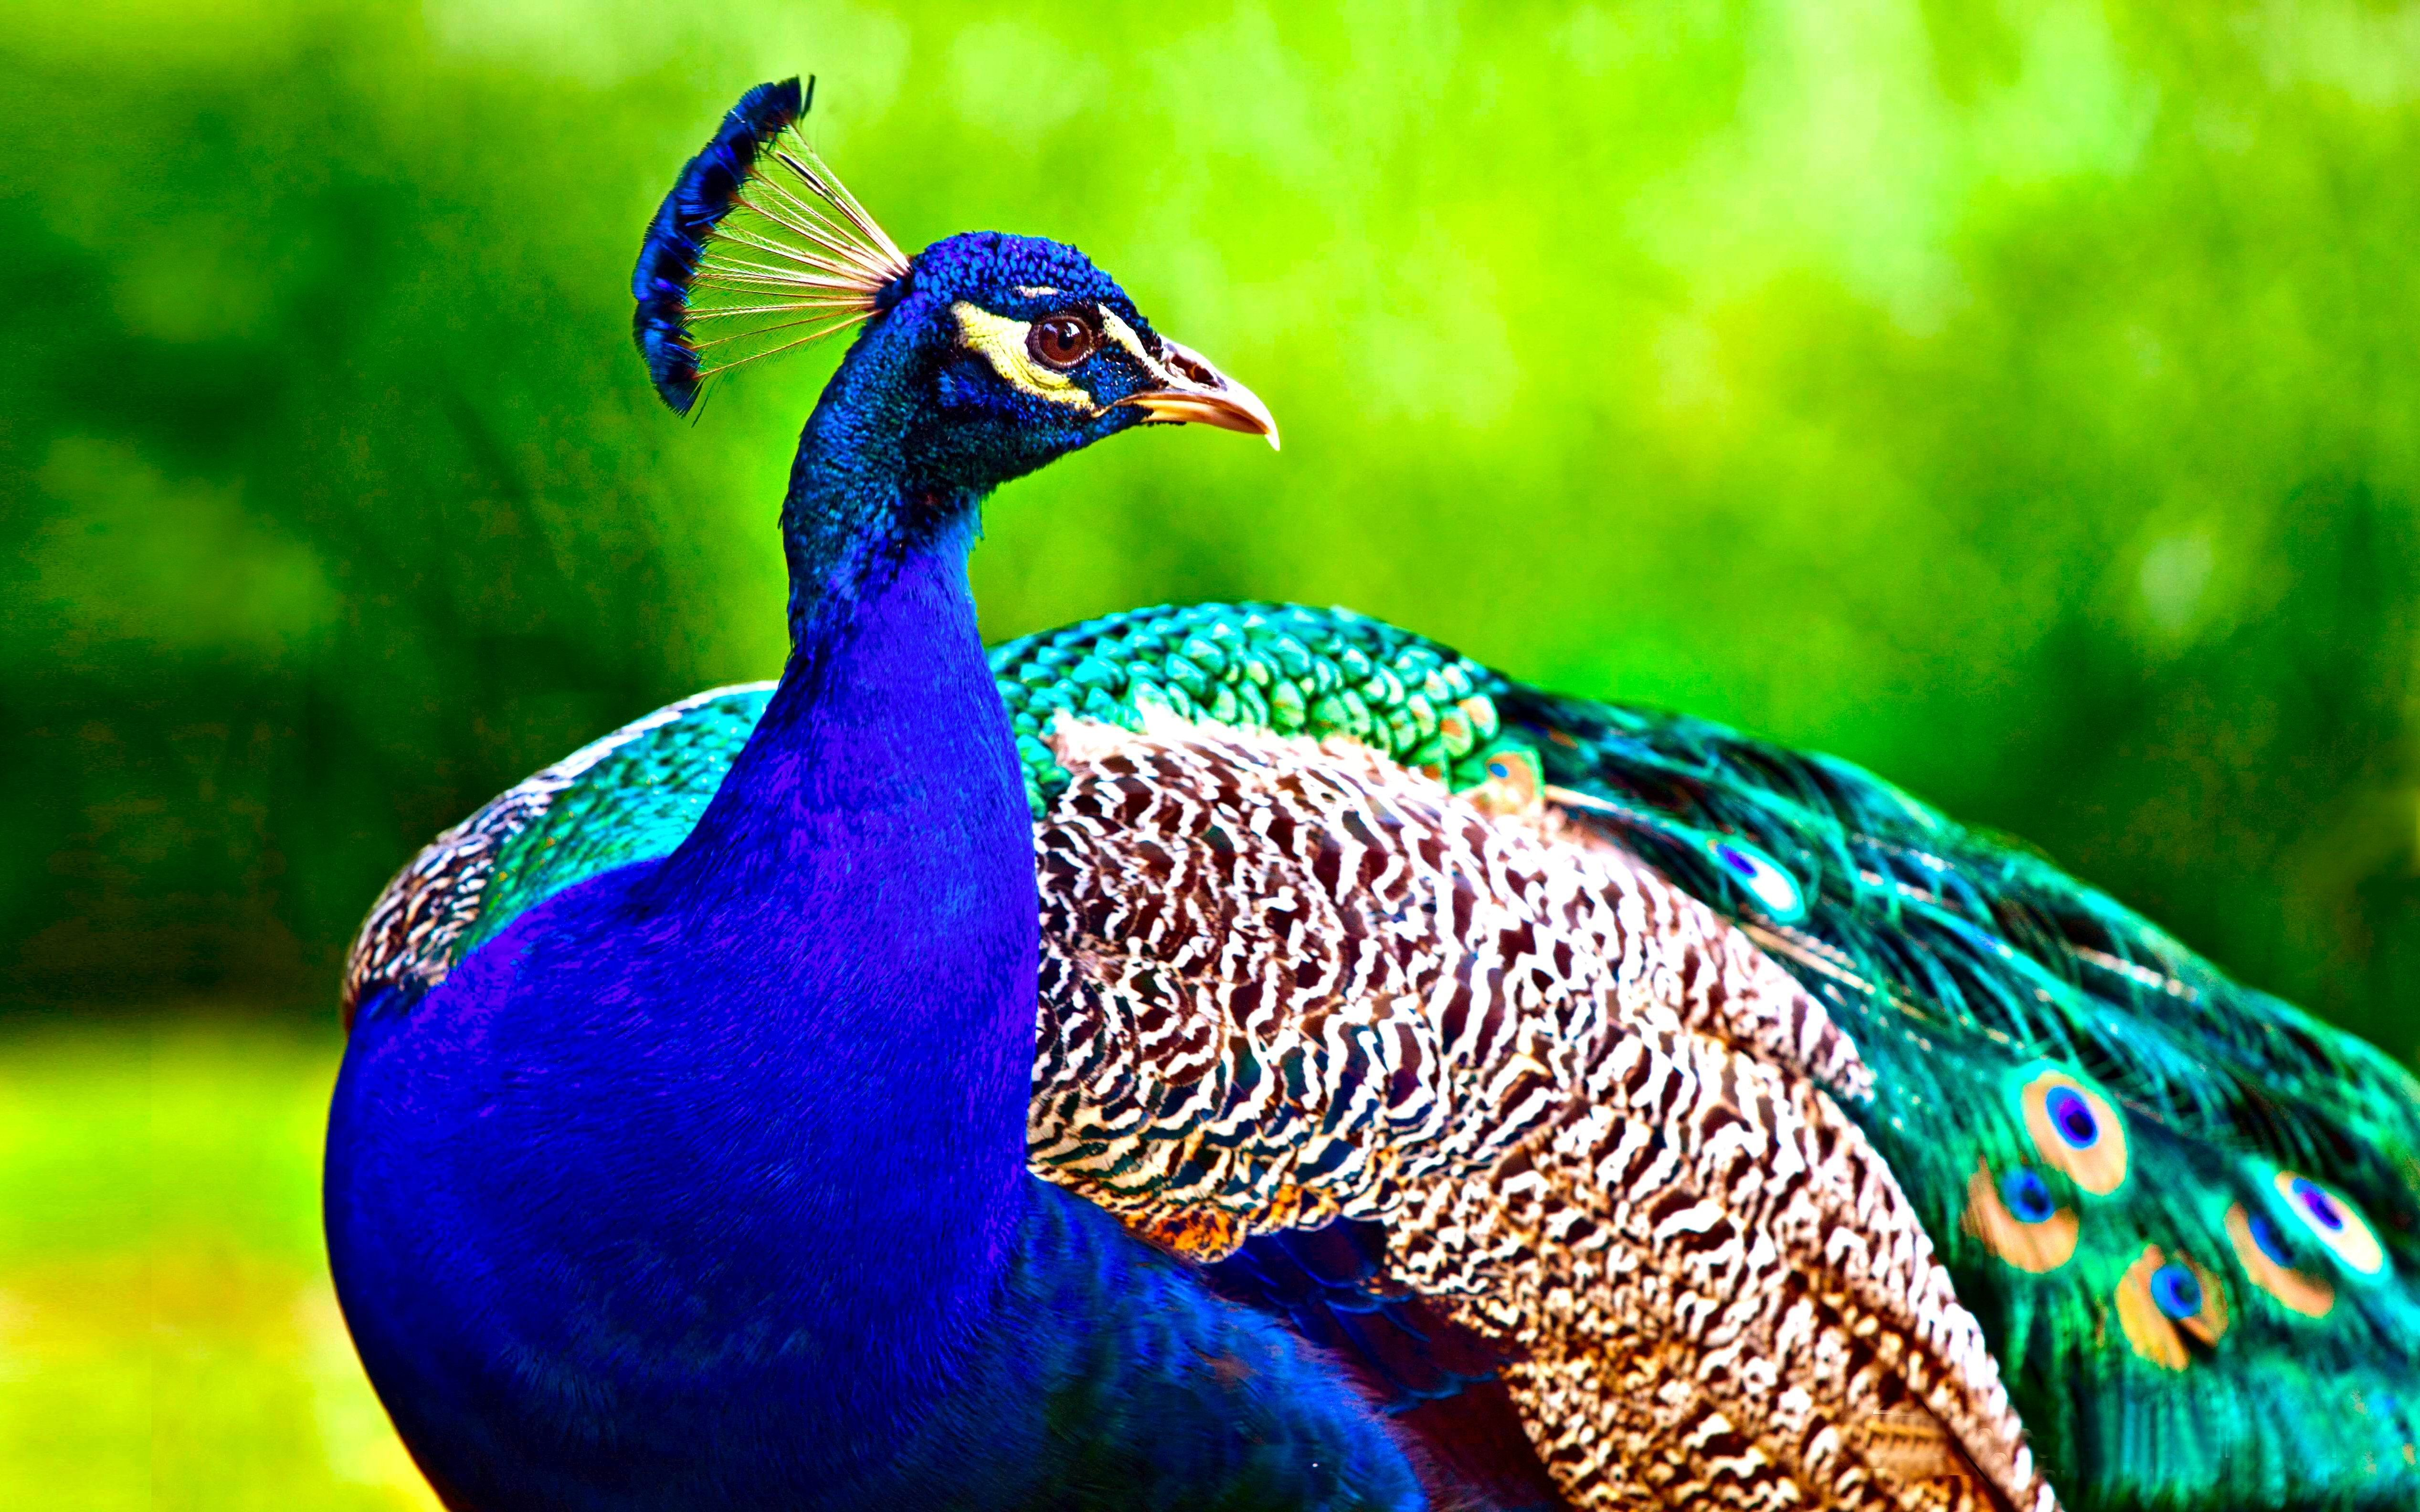 Top 10 Birds Wallpapers Hd Peacock Wallpaper Peacock Pictures Peacock